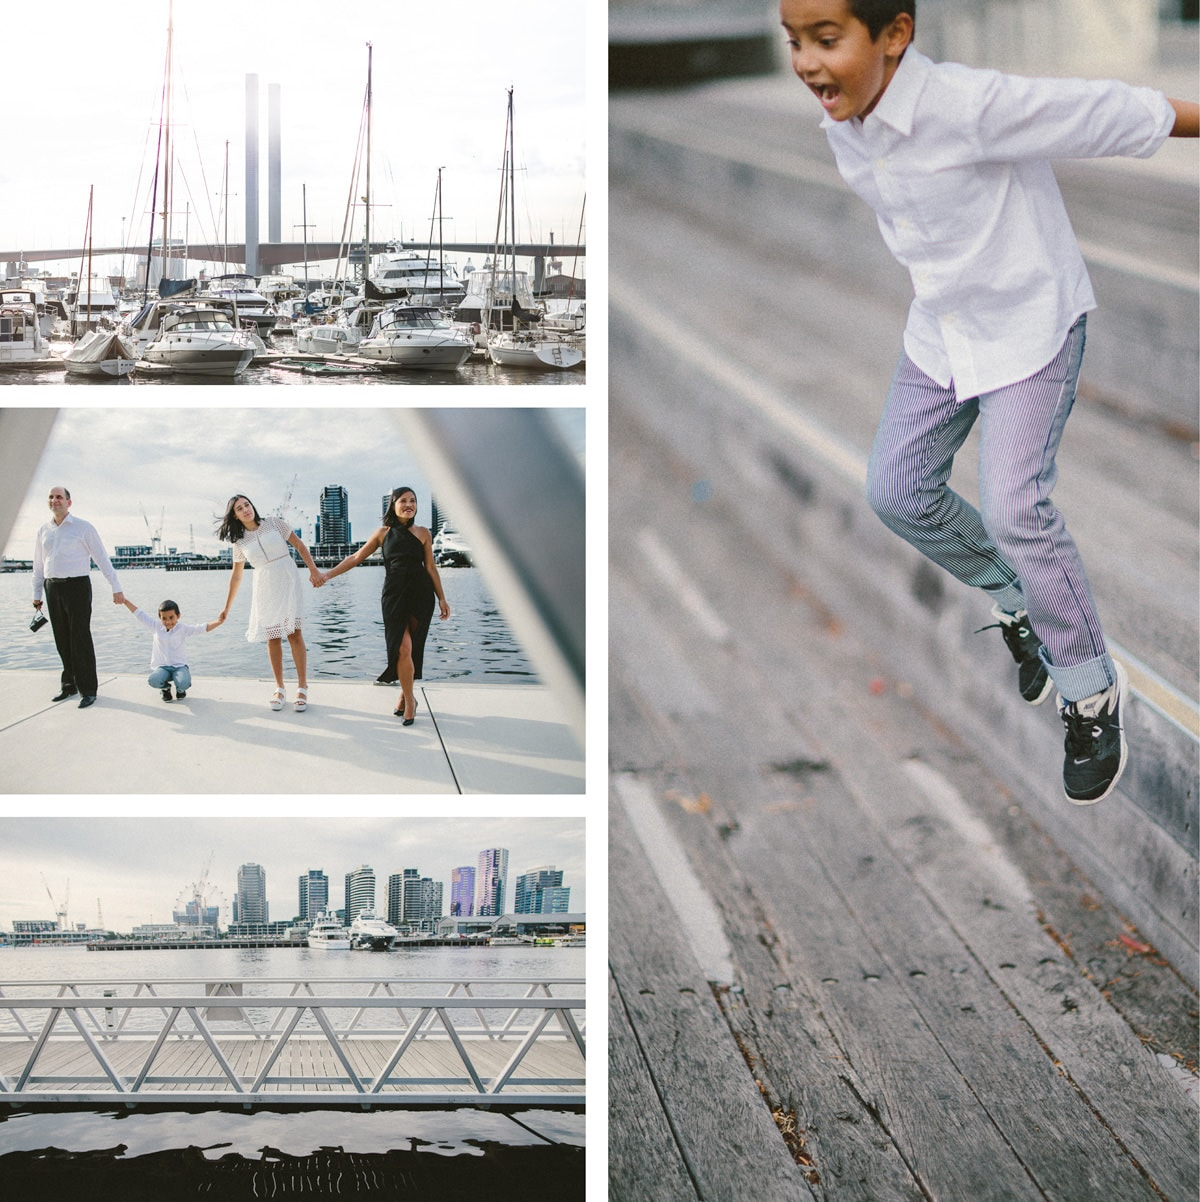 family photography in melbourne - kids jumping and having fun - relaxed and candid style of photography